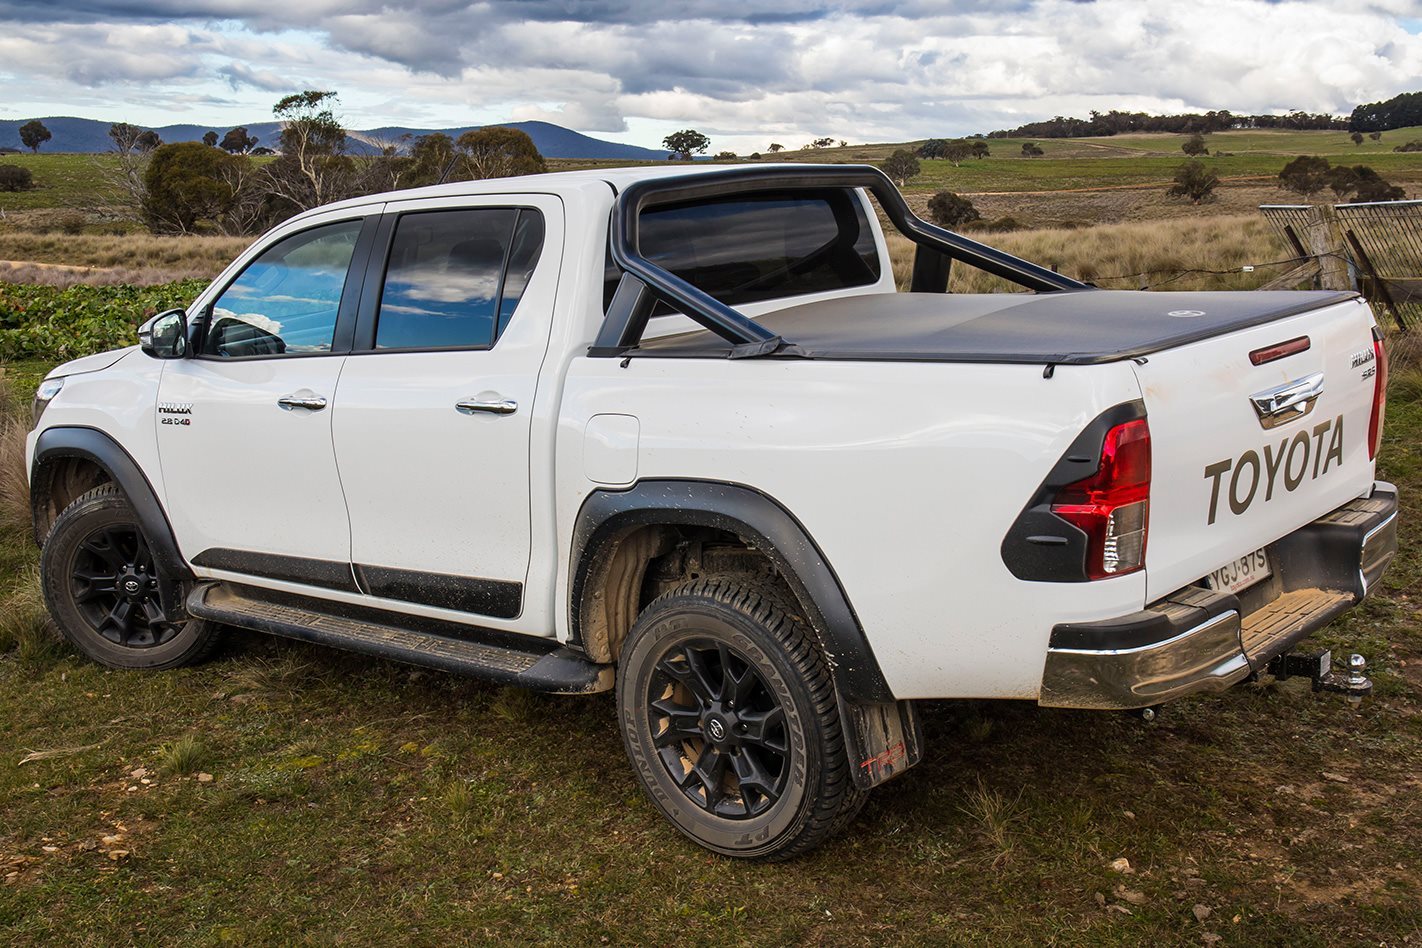 Toyota Hilux TRD rear